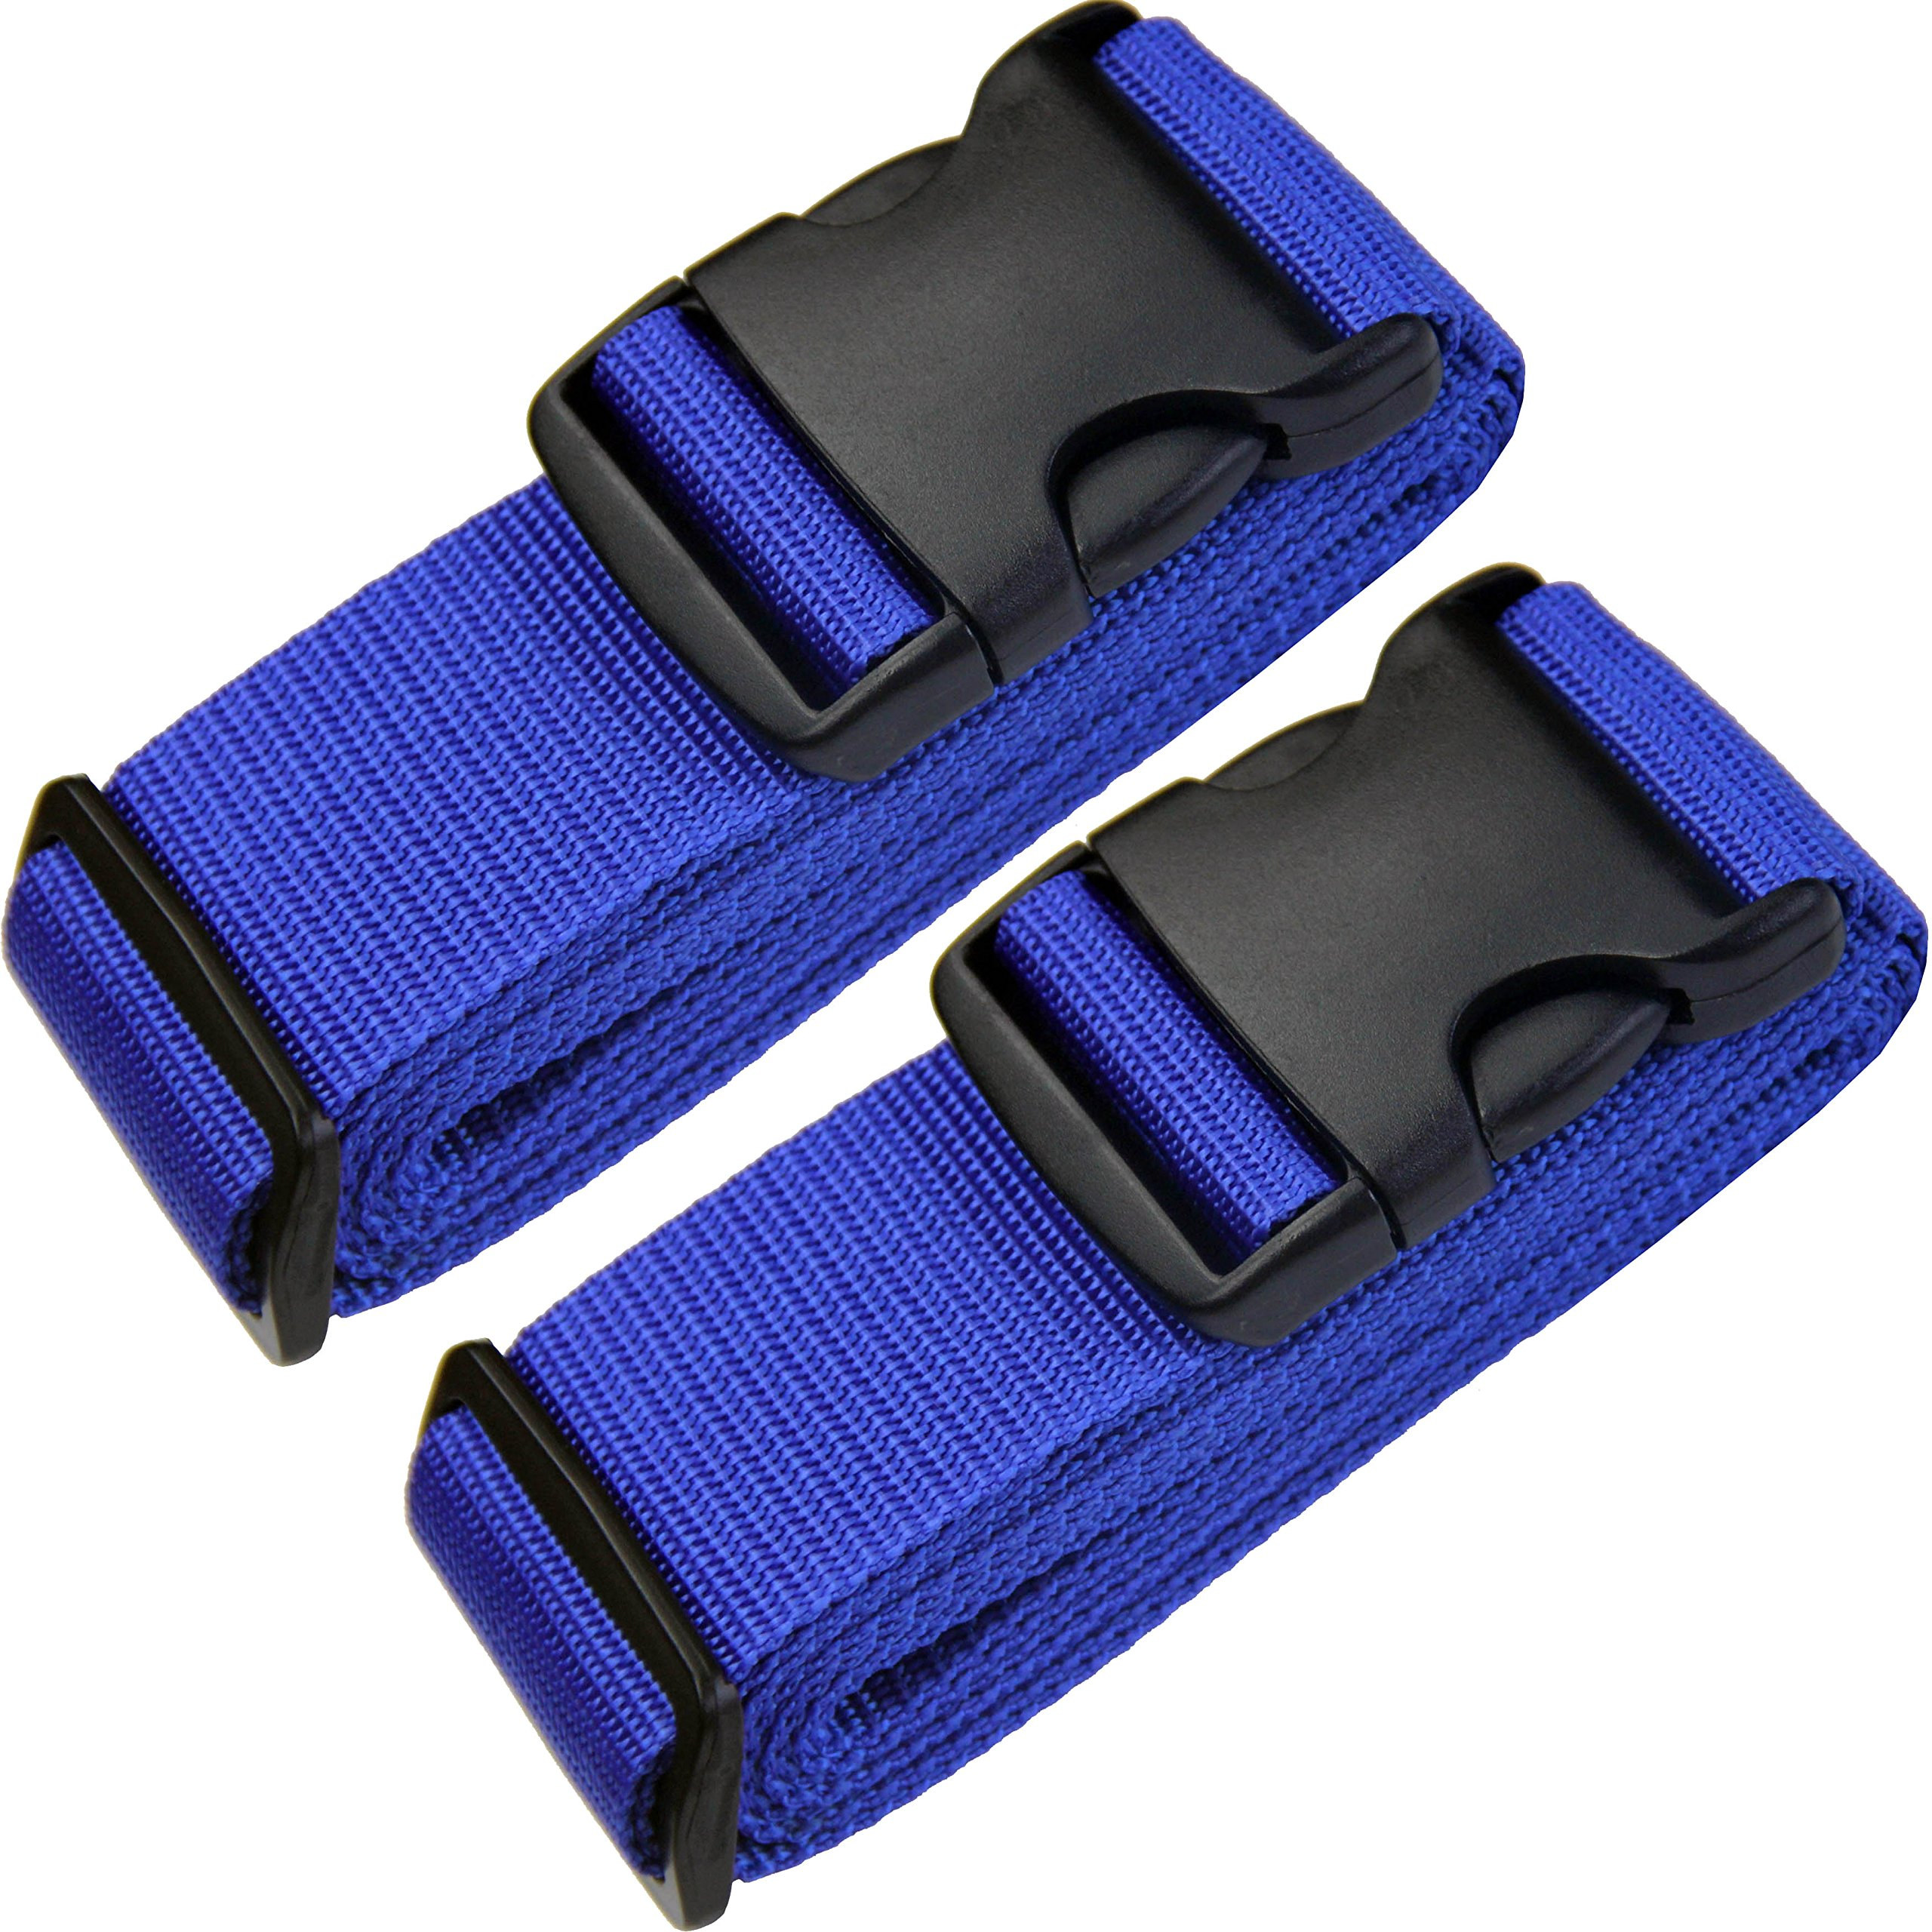 TRANVERS Luggage Straps For Suitcases Baggage Belt Heavy Duty Adjustable 2-Pack Blue